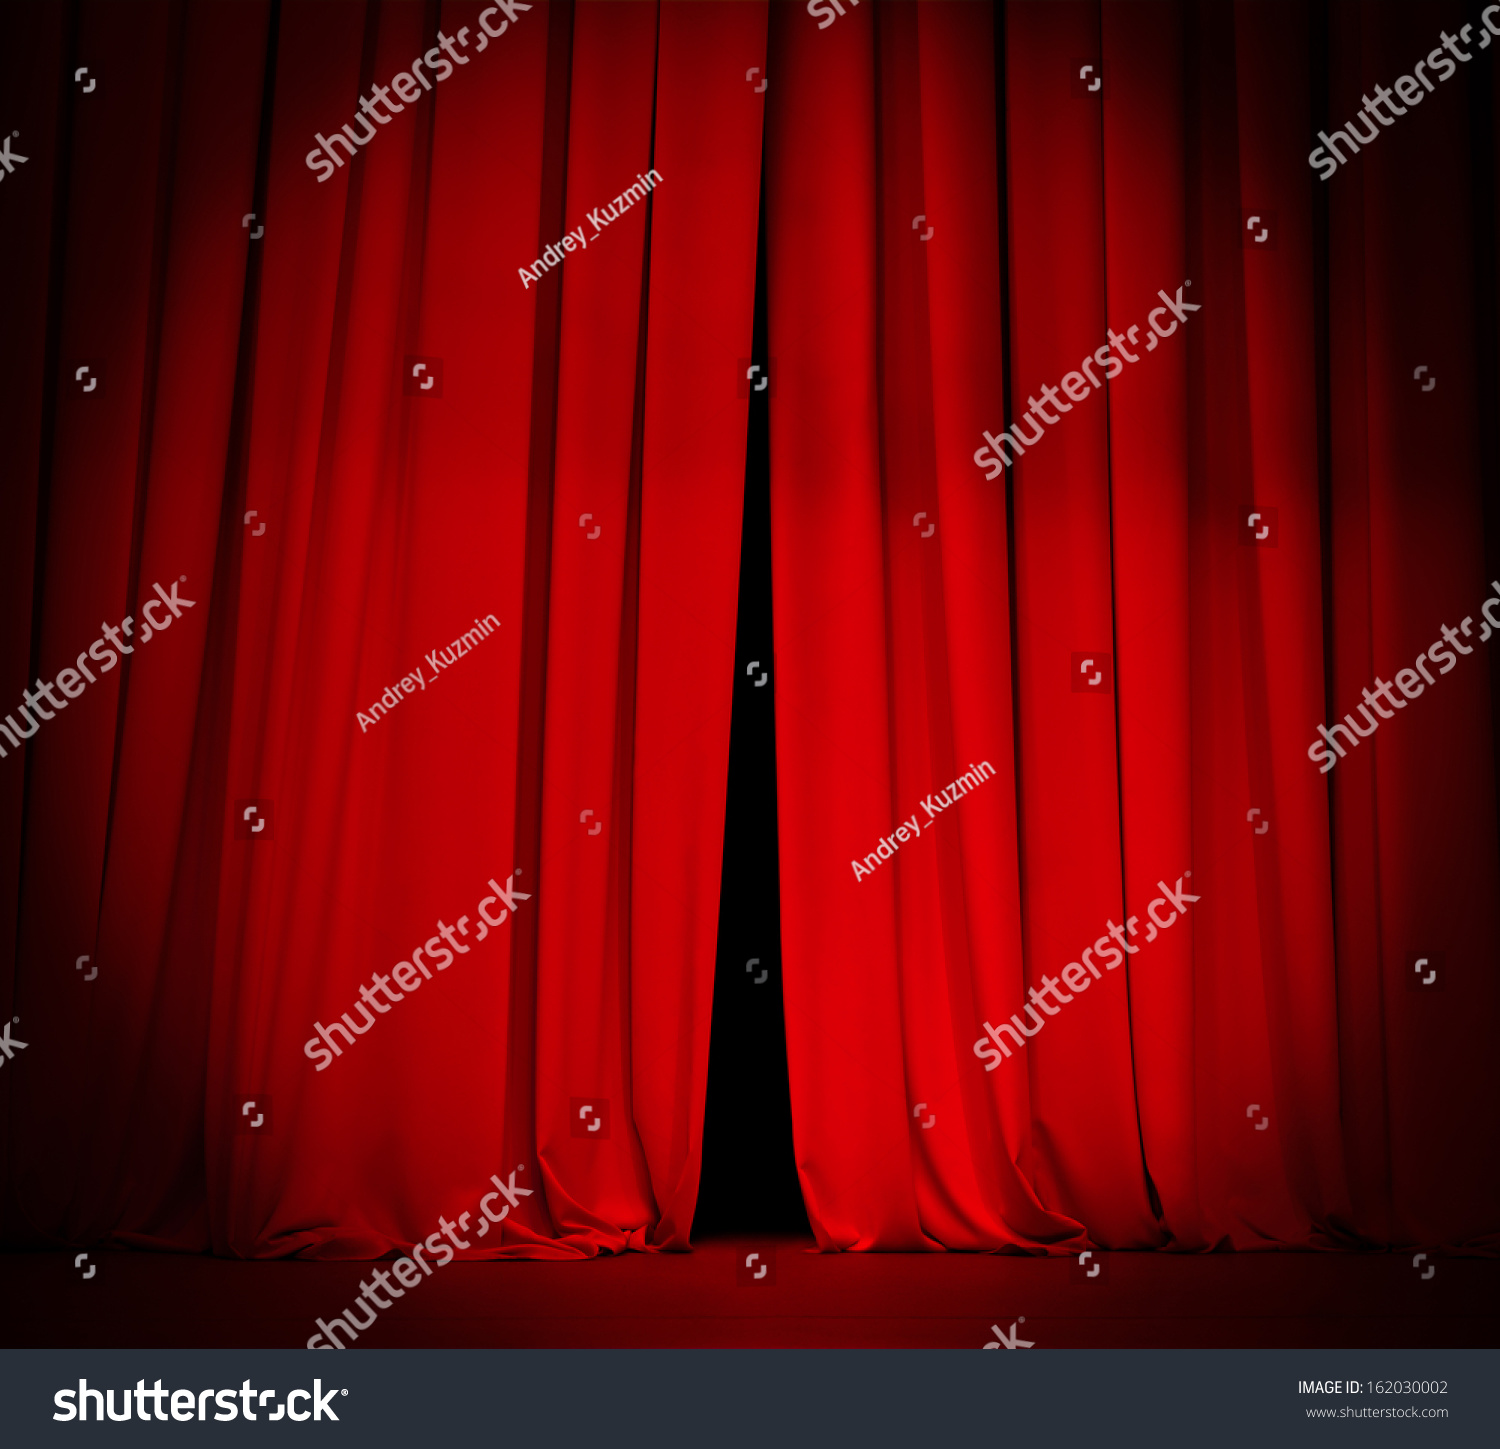 Red curtain foundation